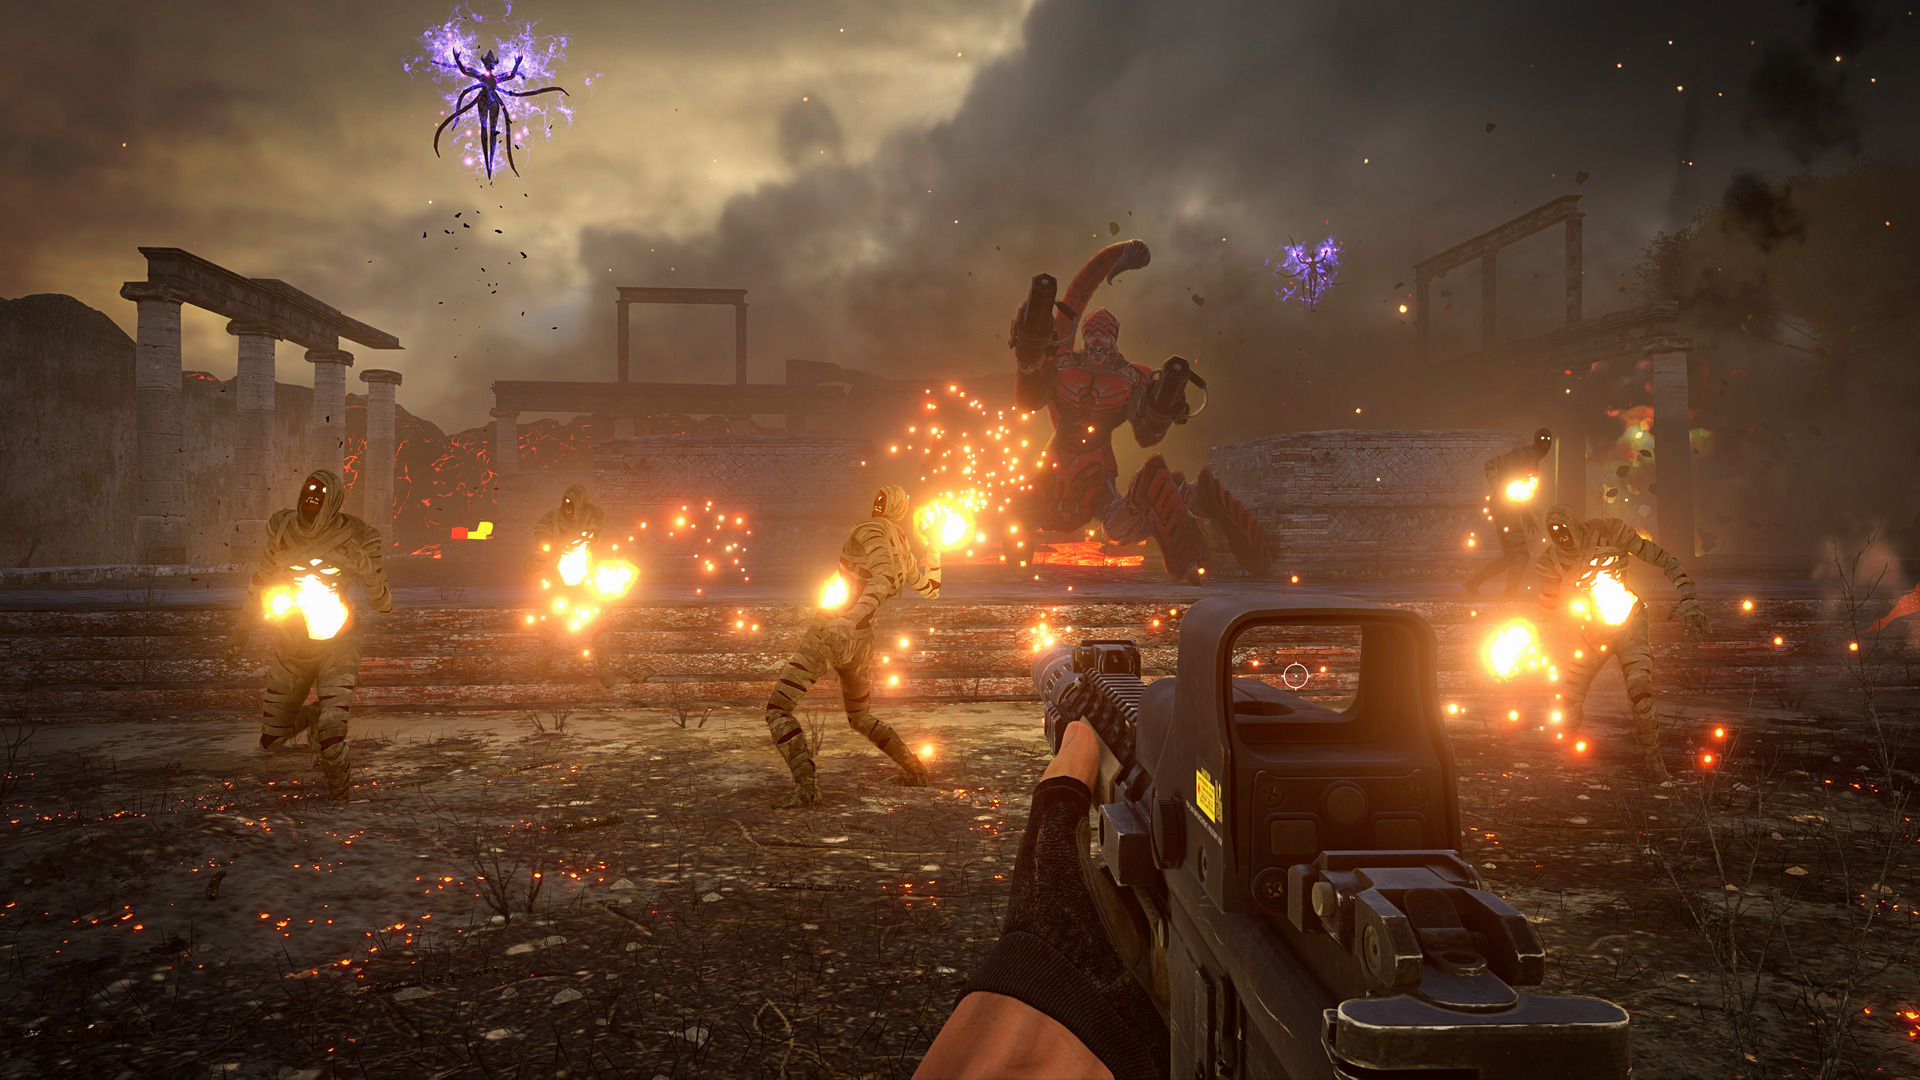 New Serious Sam 4 Screenshots Released Alongside Some Serious ...